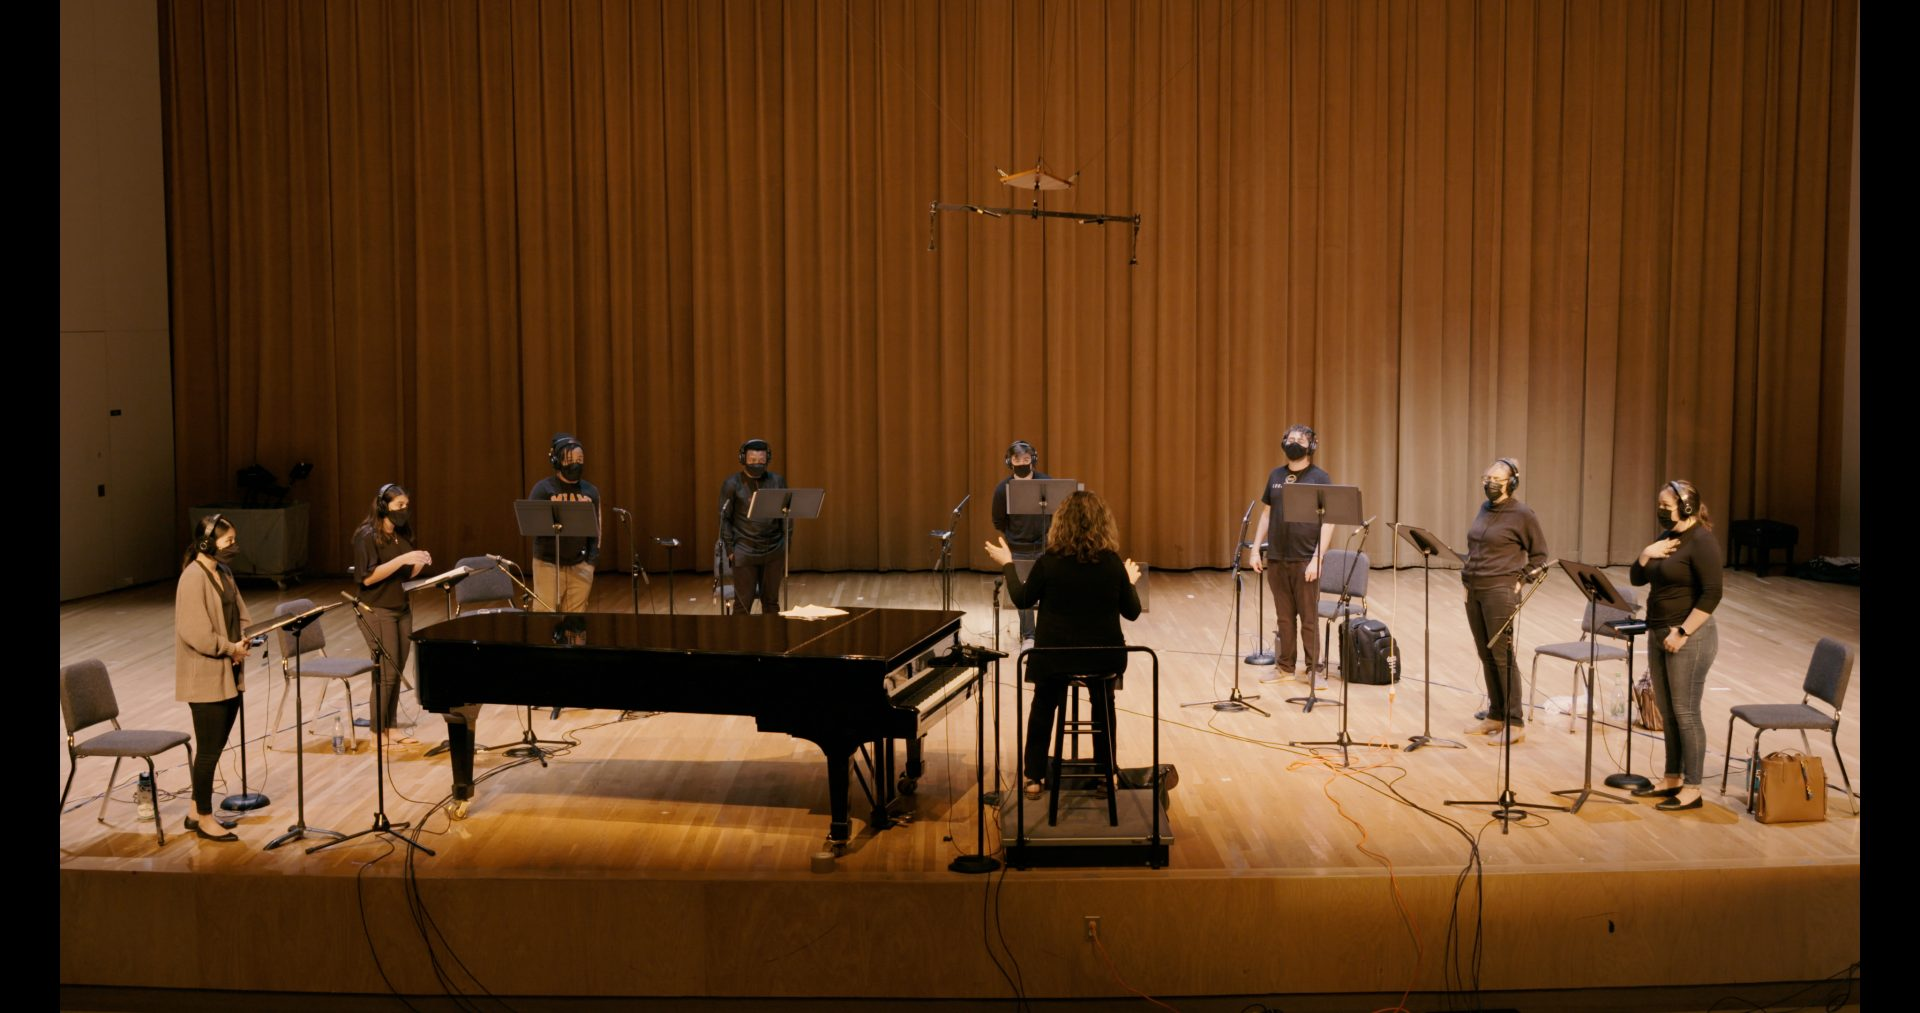 A choir recording their parts on stage.